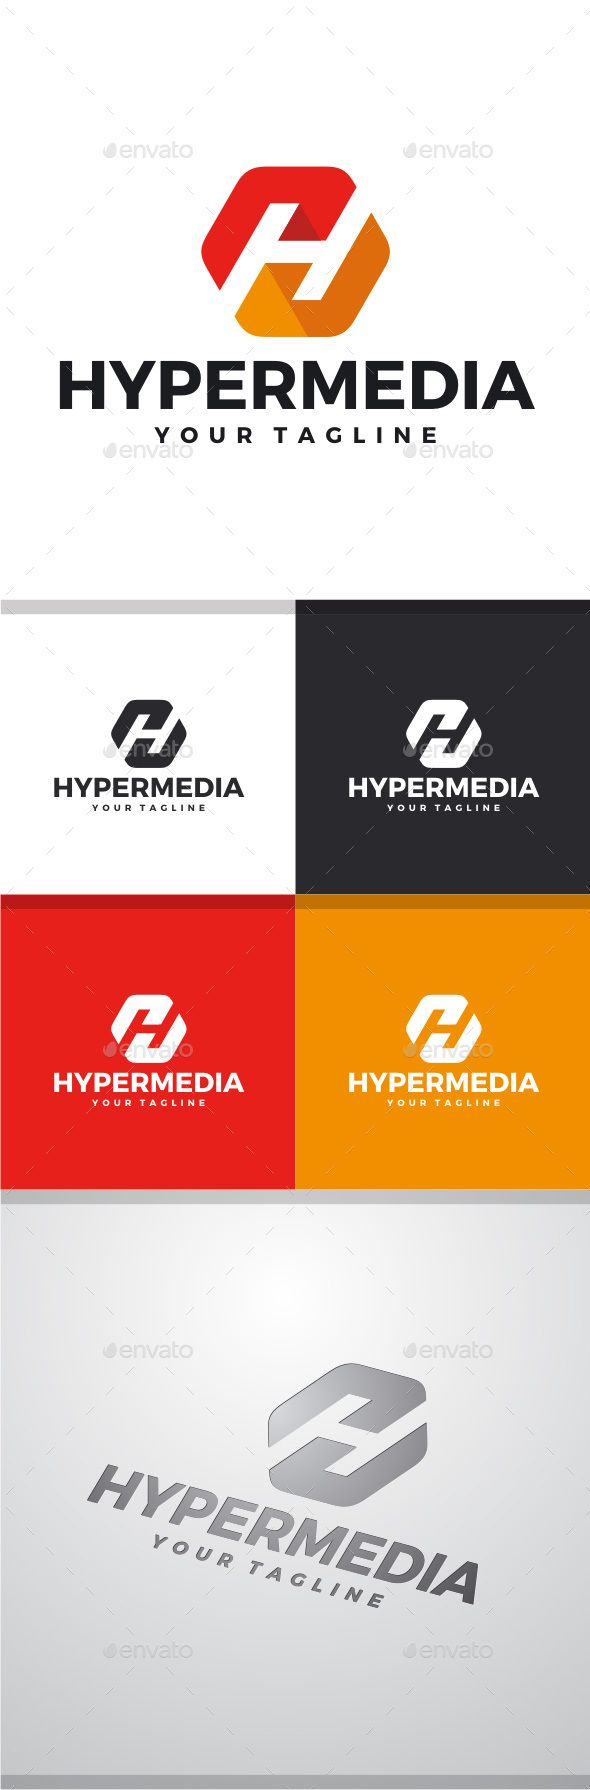 Hyper Media - Letter H Logo | Logo psd, Psd templates and Logos